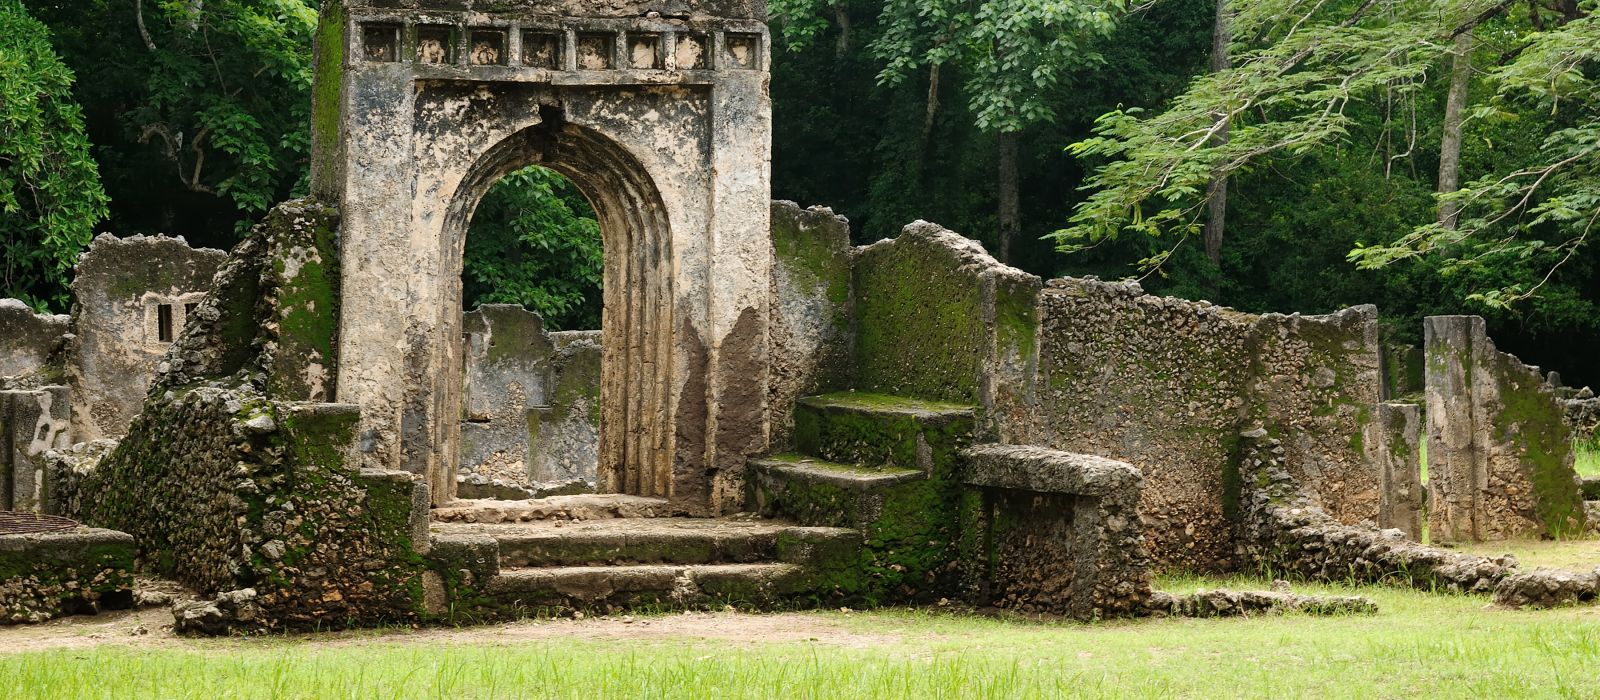 Kenya, Gede ruins are the remains of a Swahili town located in Gedi, a village near the coastal town of Malindi